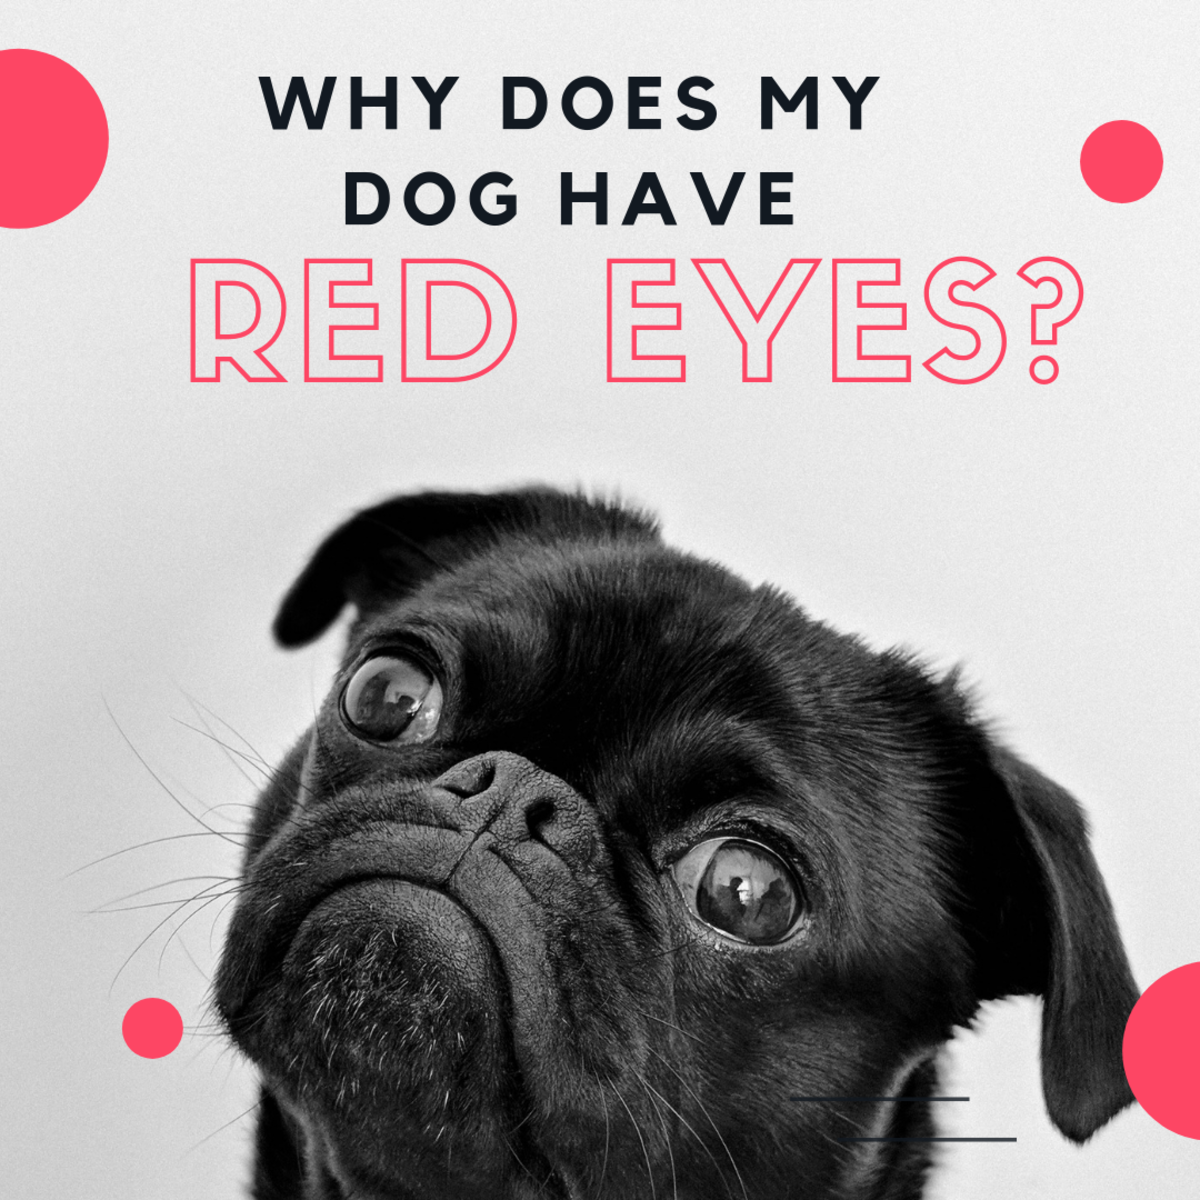 Why Are My Dog's Eyes Red and Inflamed?